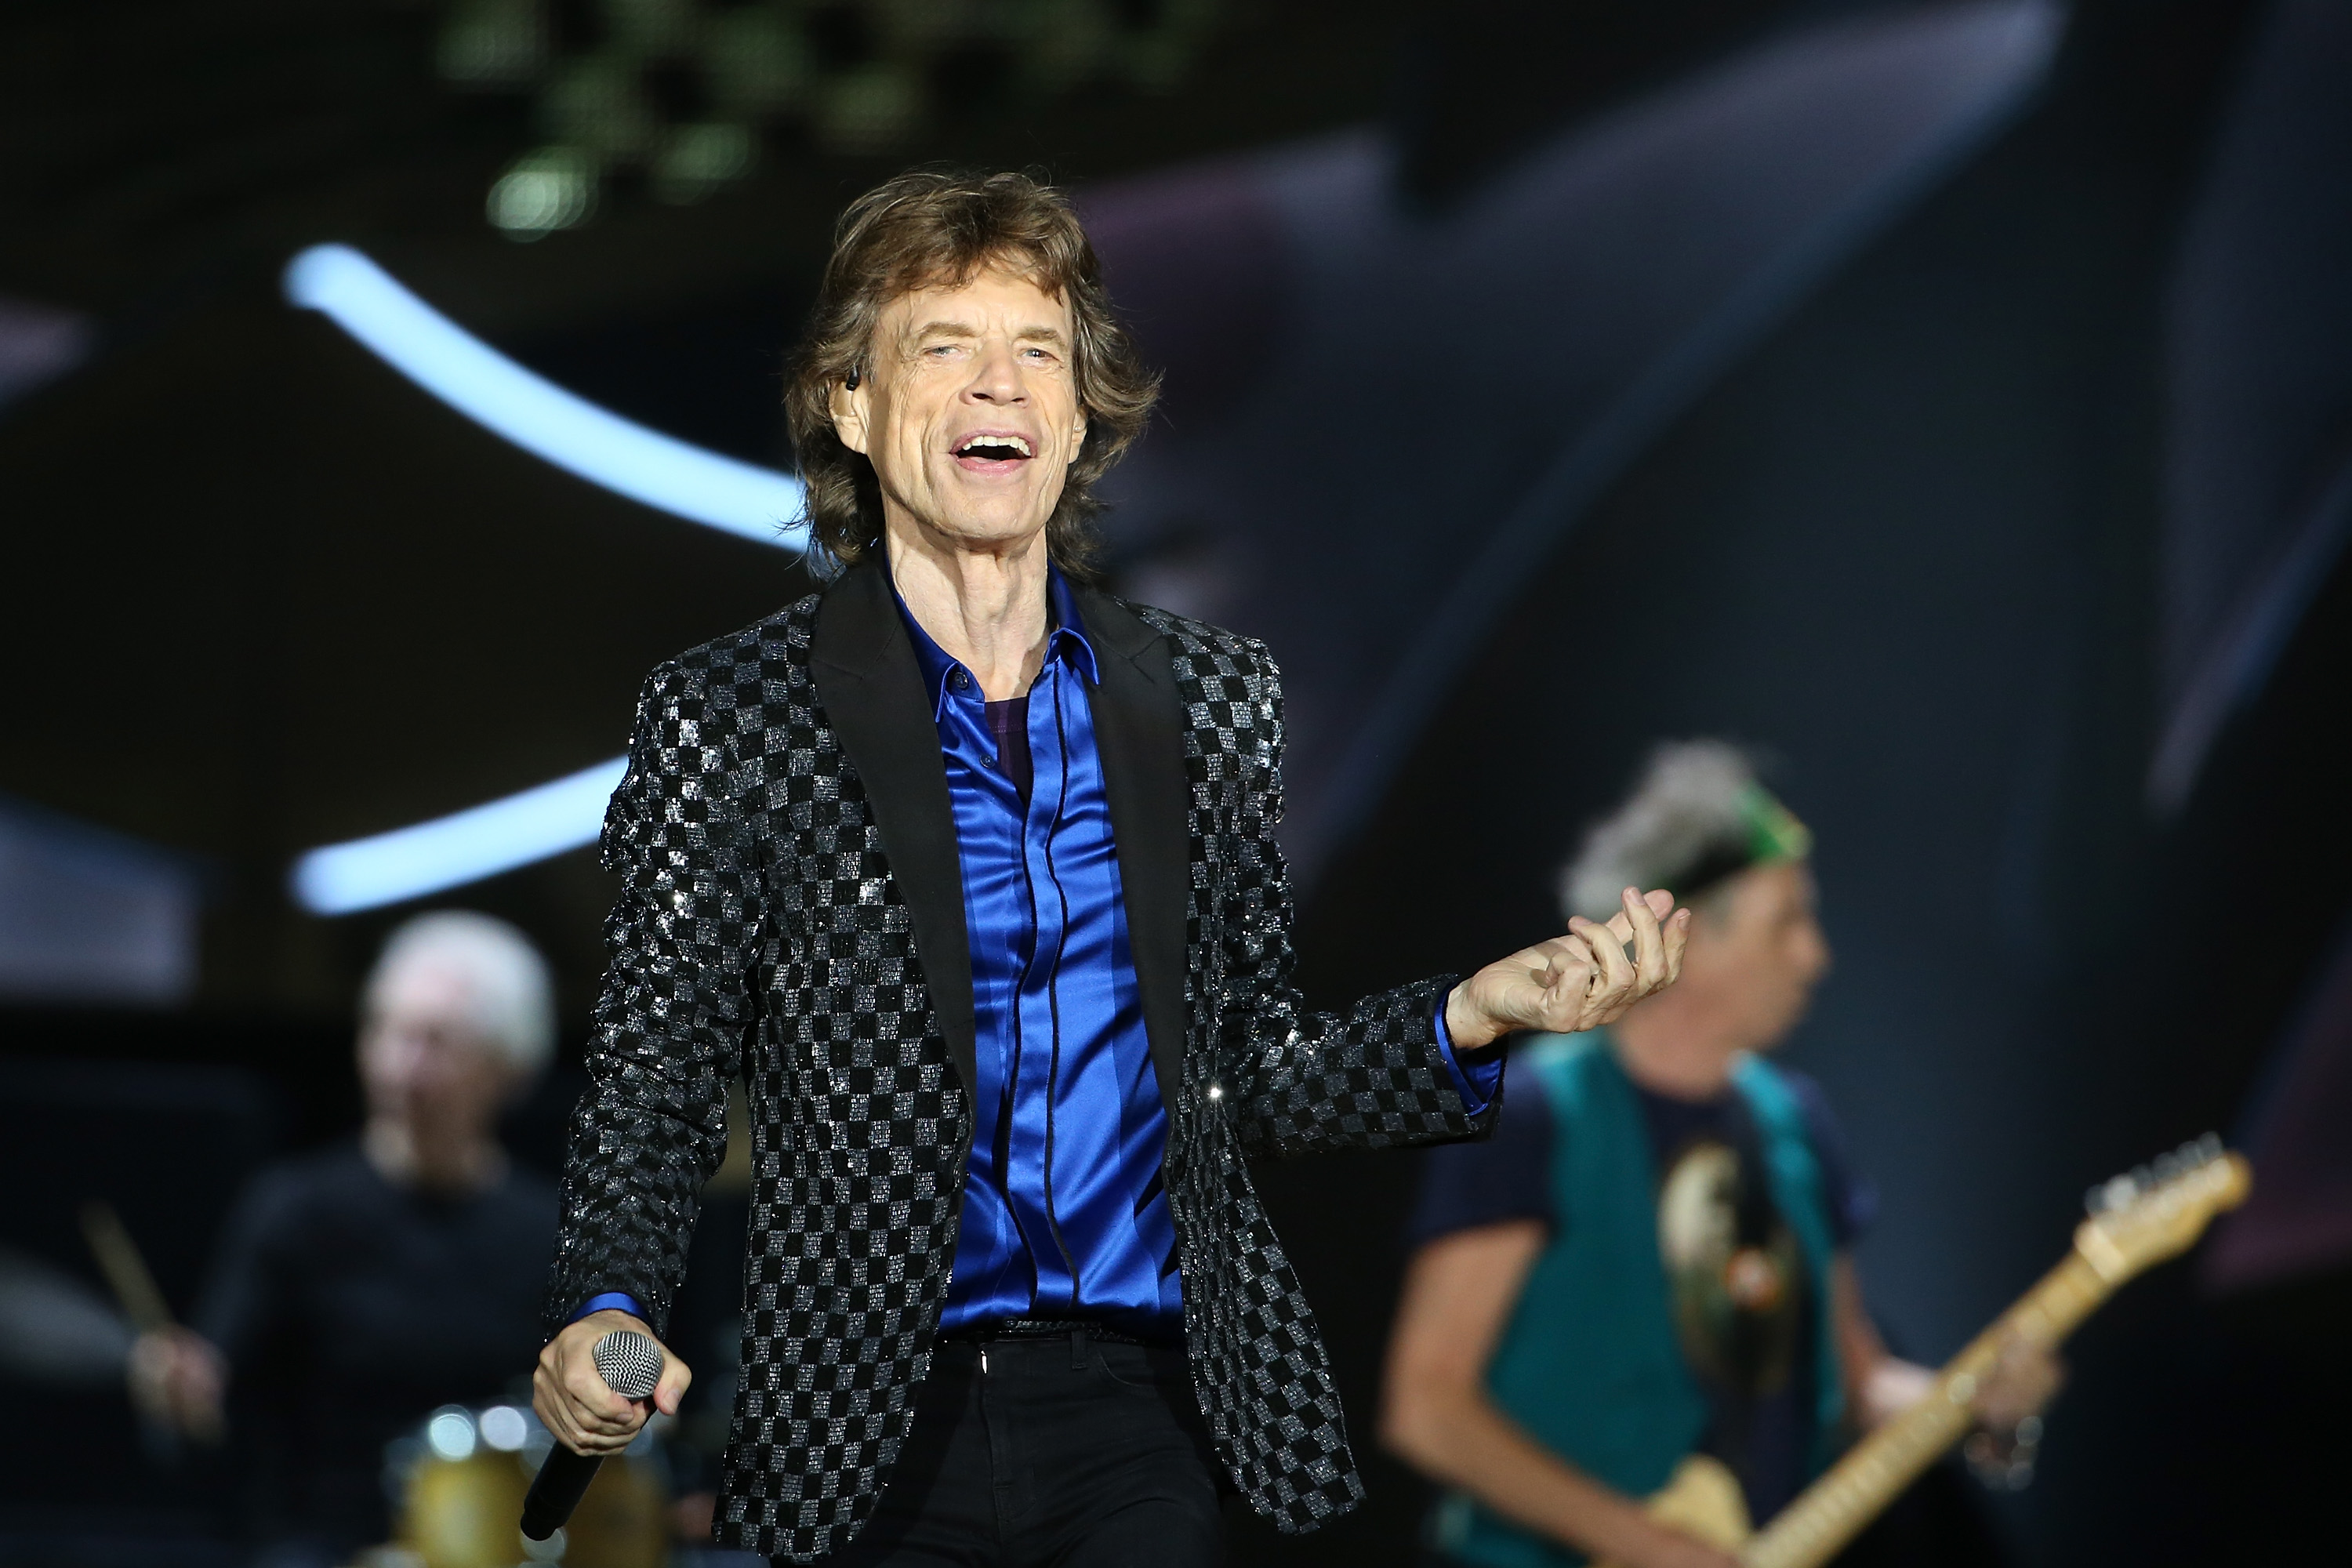 Mick Jagger 'recovering in hospital after successful heart surgery' as Rolling Stones postpone tour